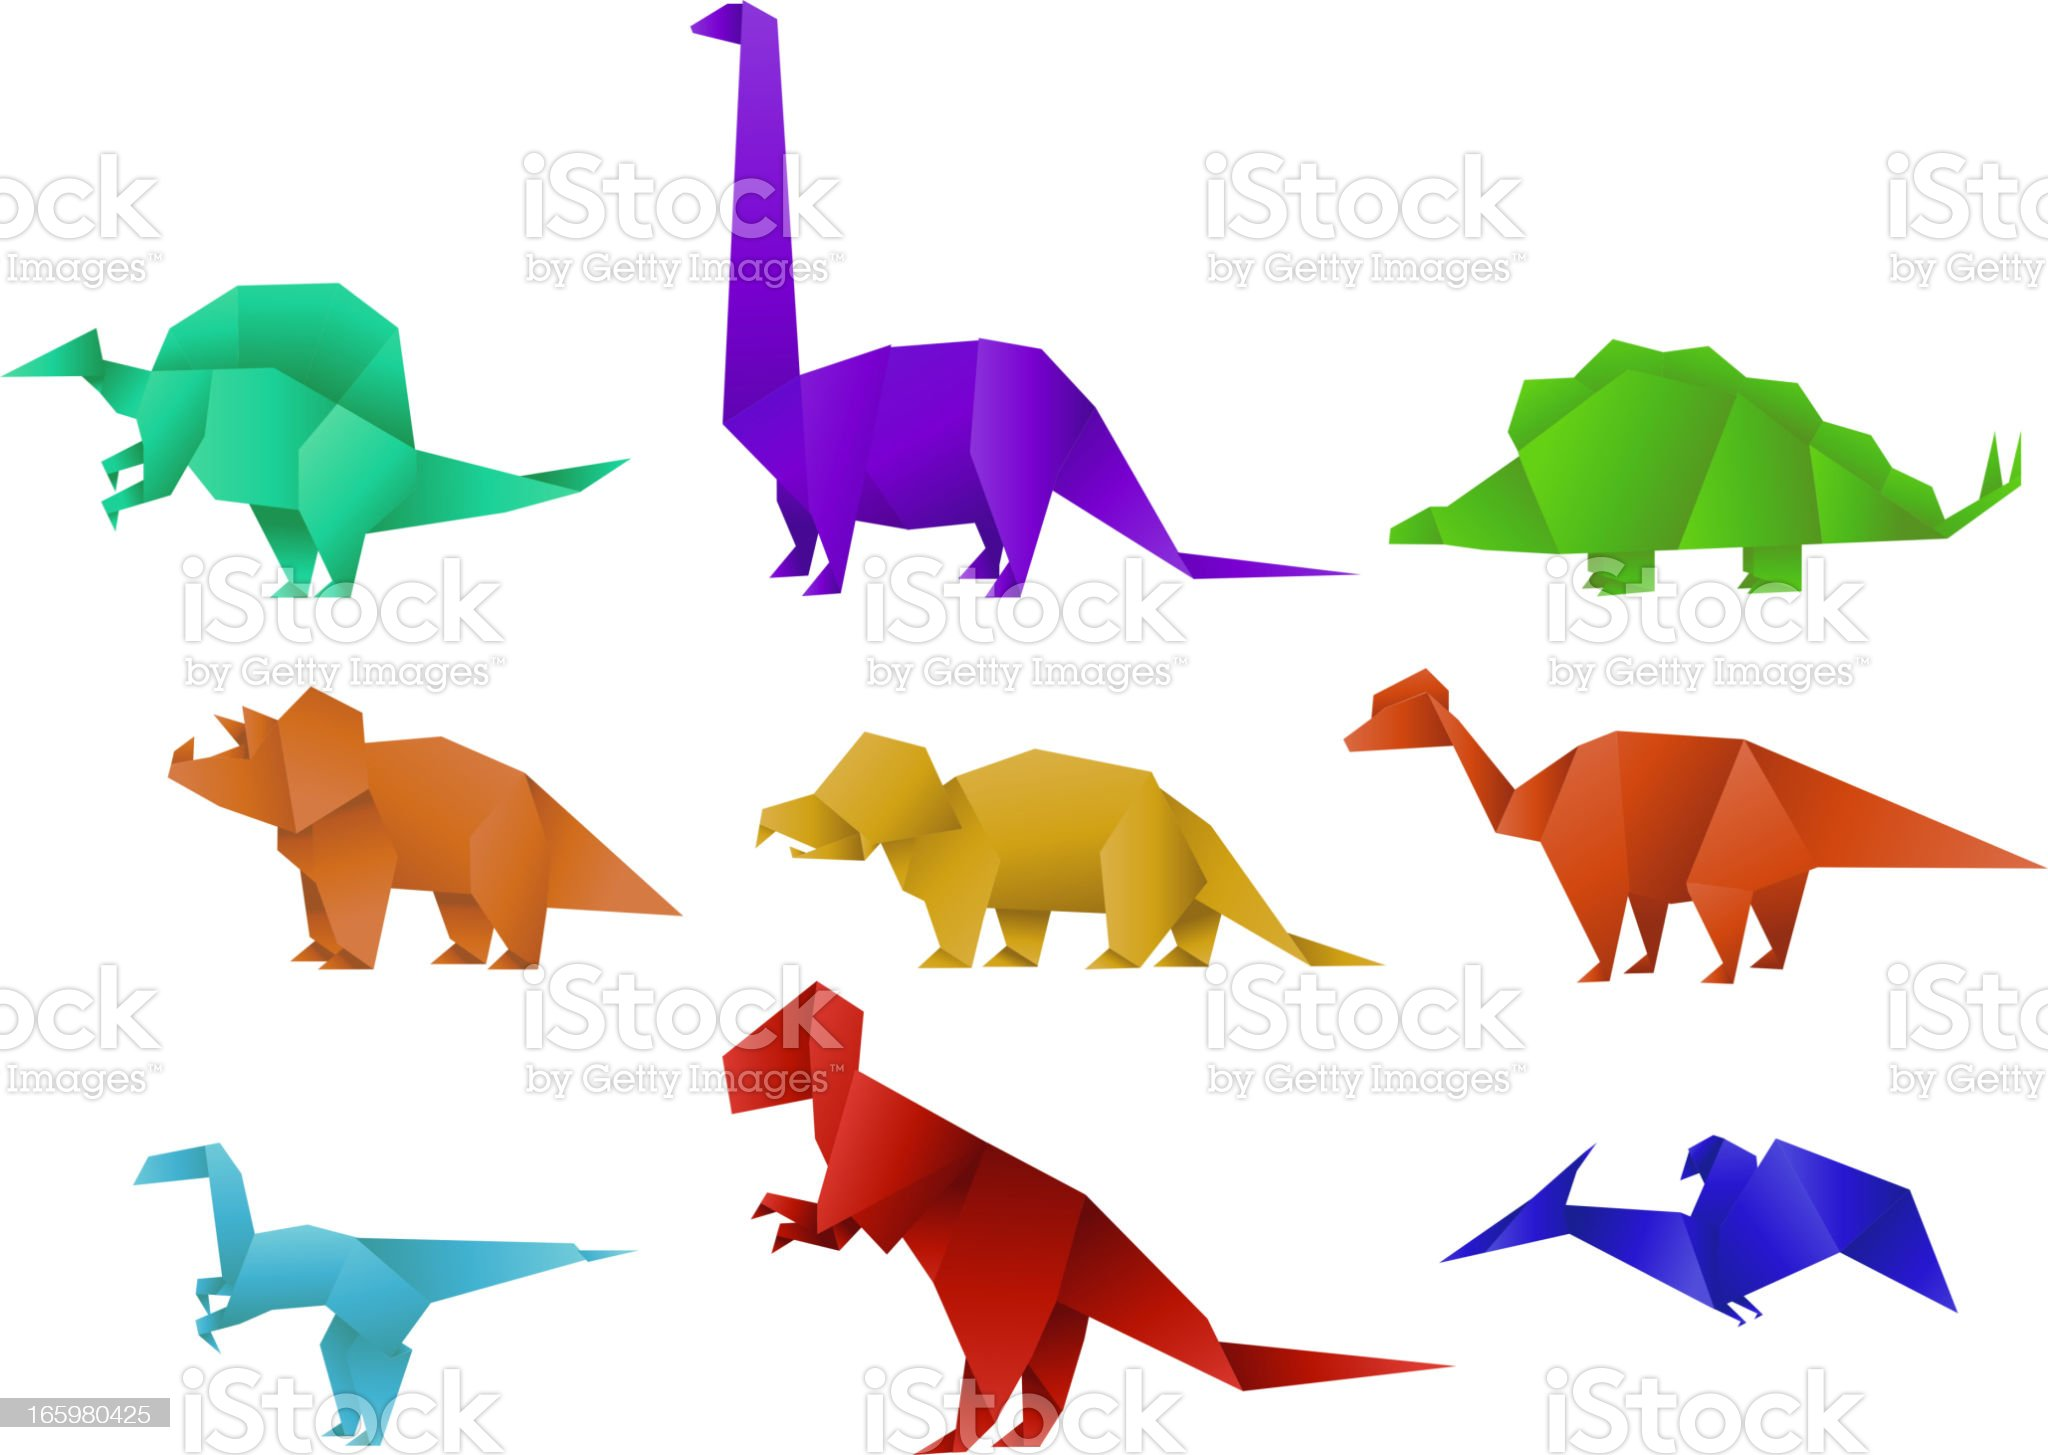 Set of Nine Color Paper Origami Dinosaur Collection vector illustration royalty-free stock vector art